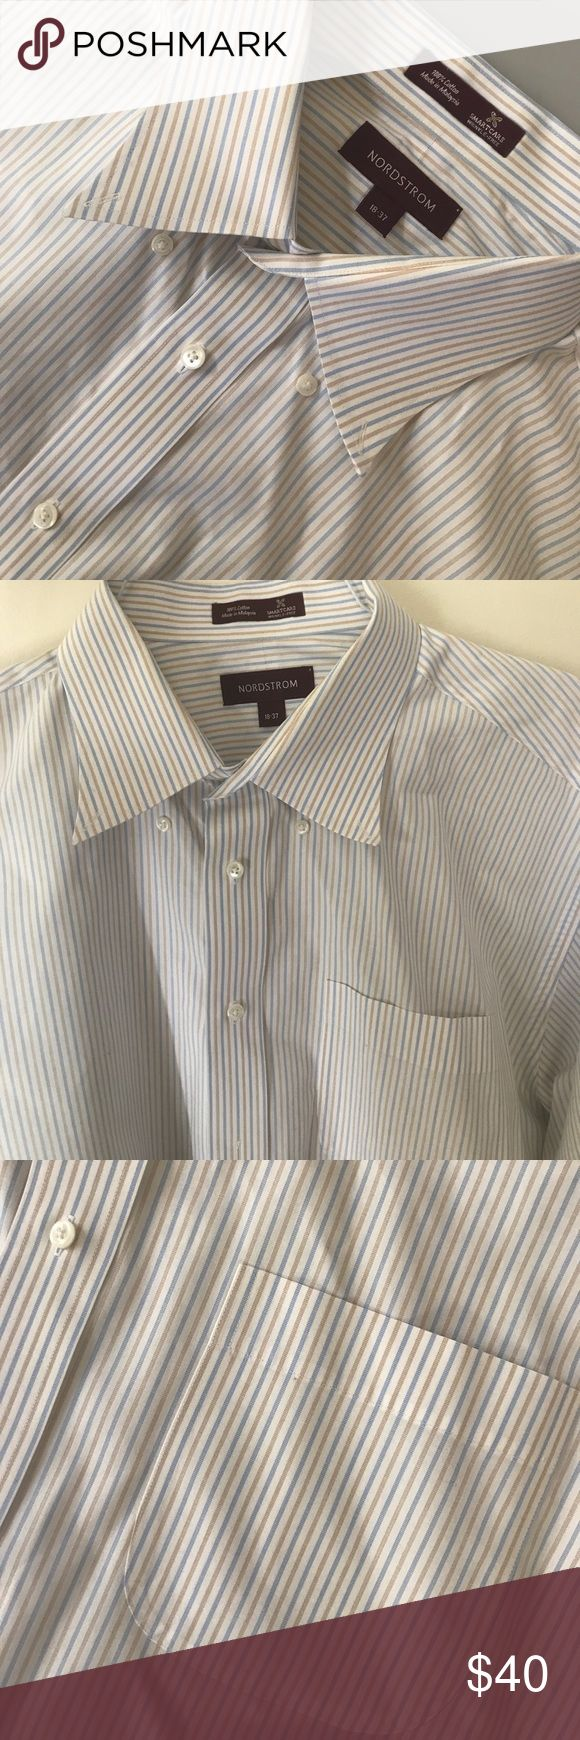 Nordstroms Mens Multi stripped Dress Shirt Mens Wrinkle-resistant cotton defines a versatile dress shirt fitted with a smart button-down collar and rounded, single-button cuffs. 18 neck sleeve 37. Condition: new Nordstrom Shirts Dress Shirts